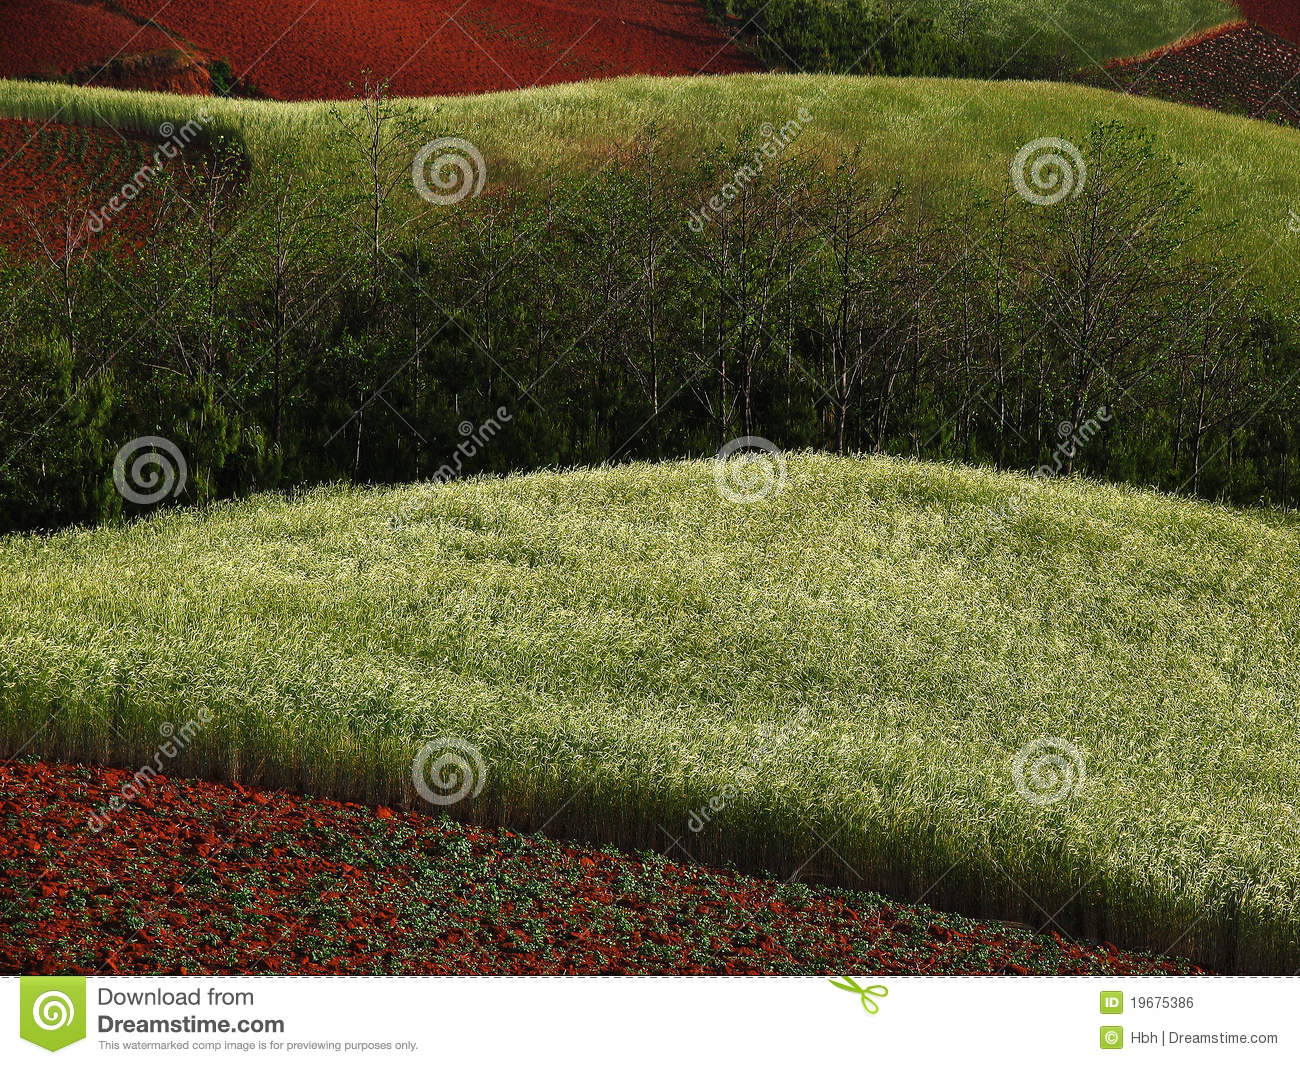 Yunnan red soil dry royalty free stock image image 19675386 for What soil contains